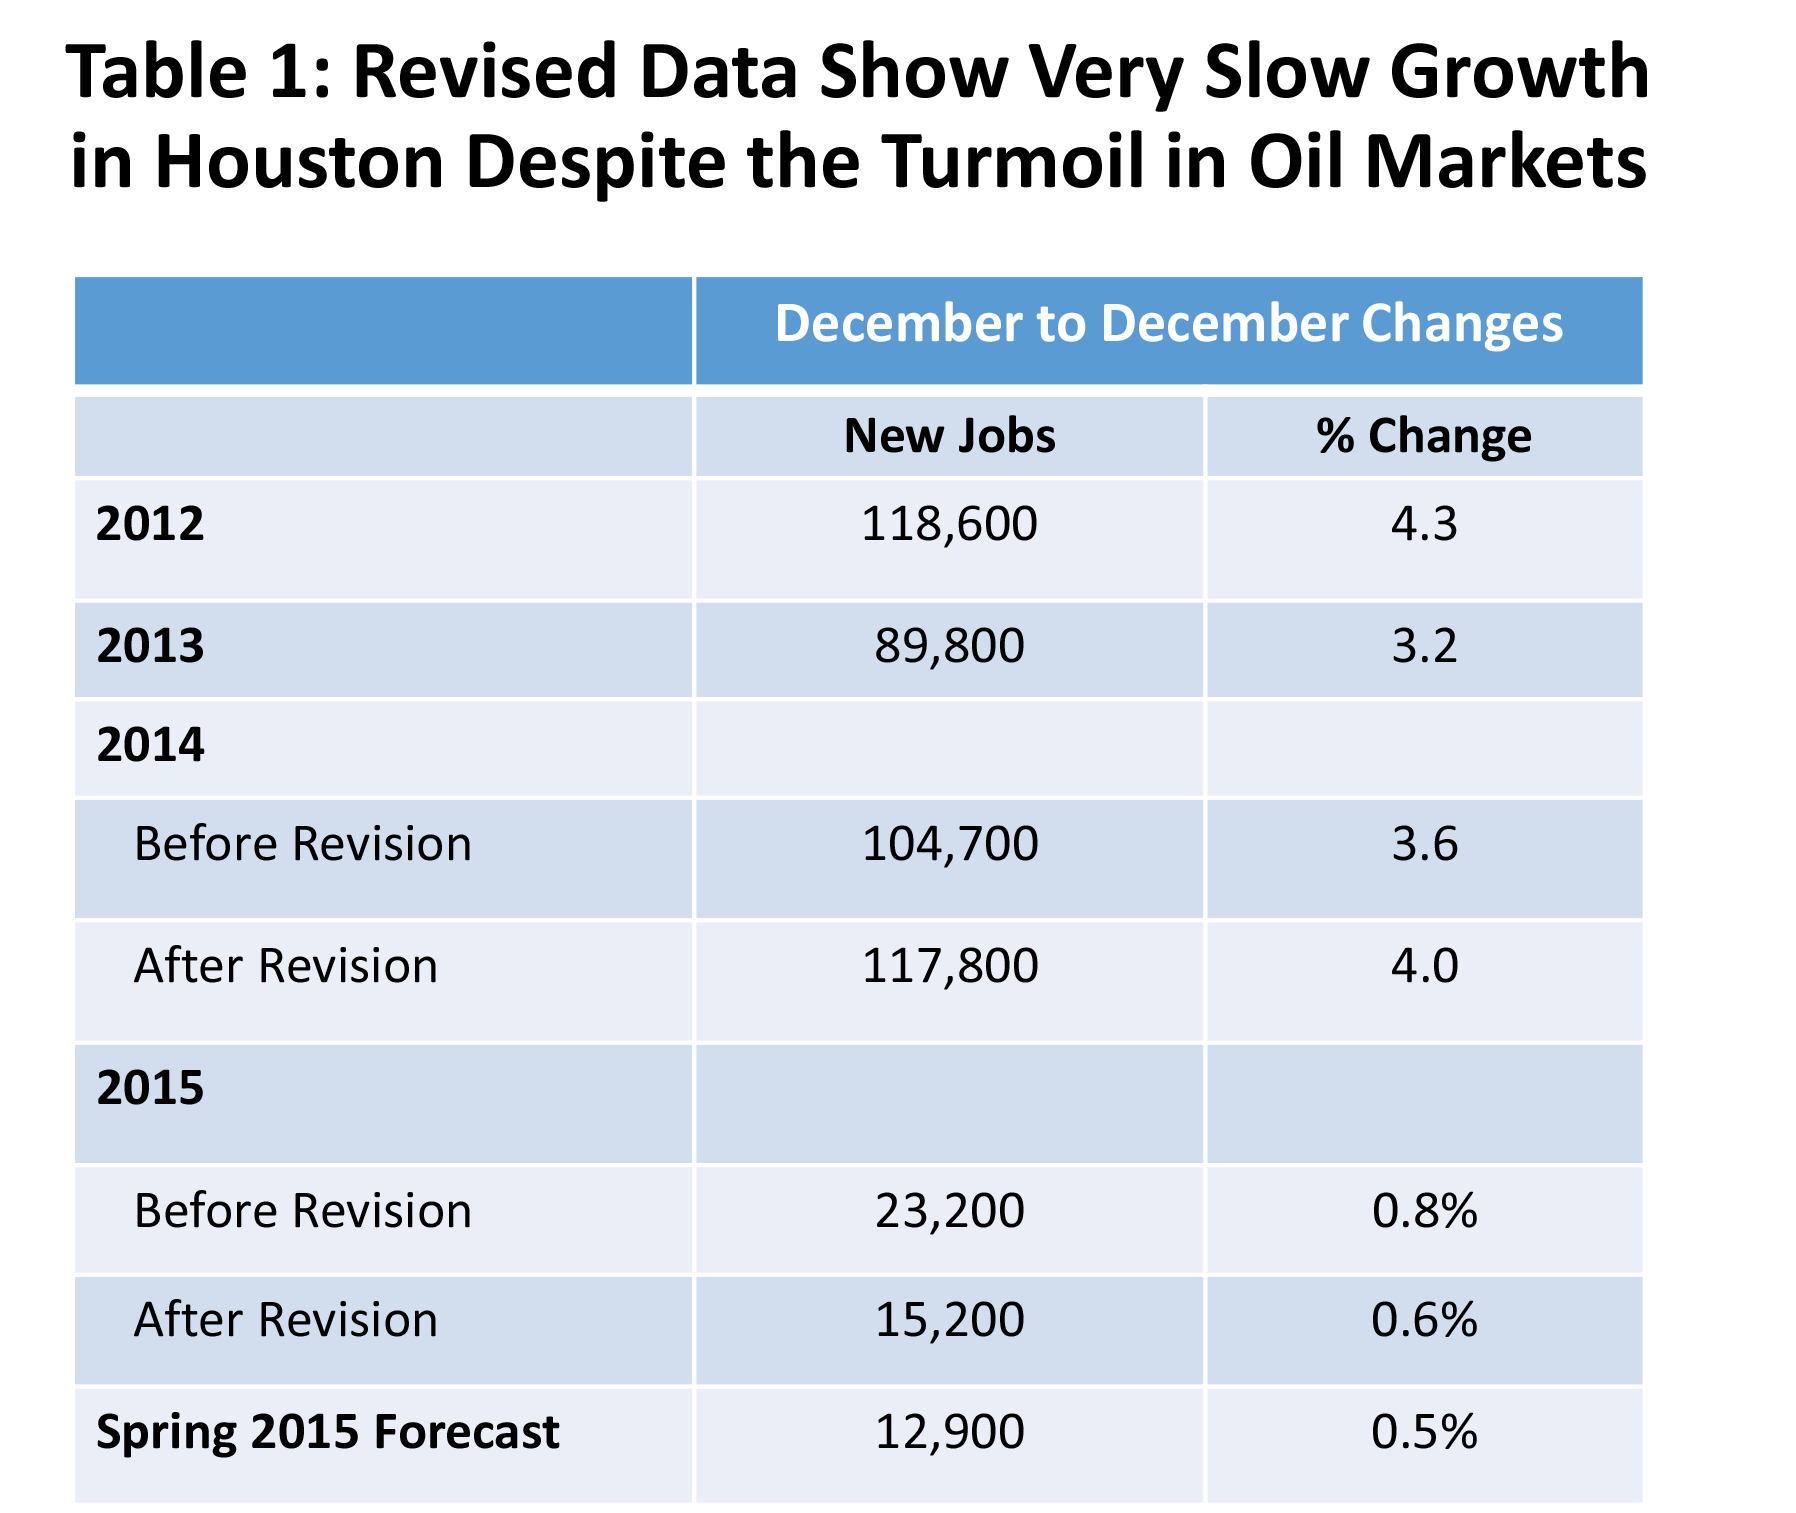 Table 1. Revised Data Show Very Slow Growth in Houston Despite the Turmoil in Oil Markets